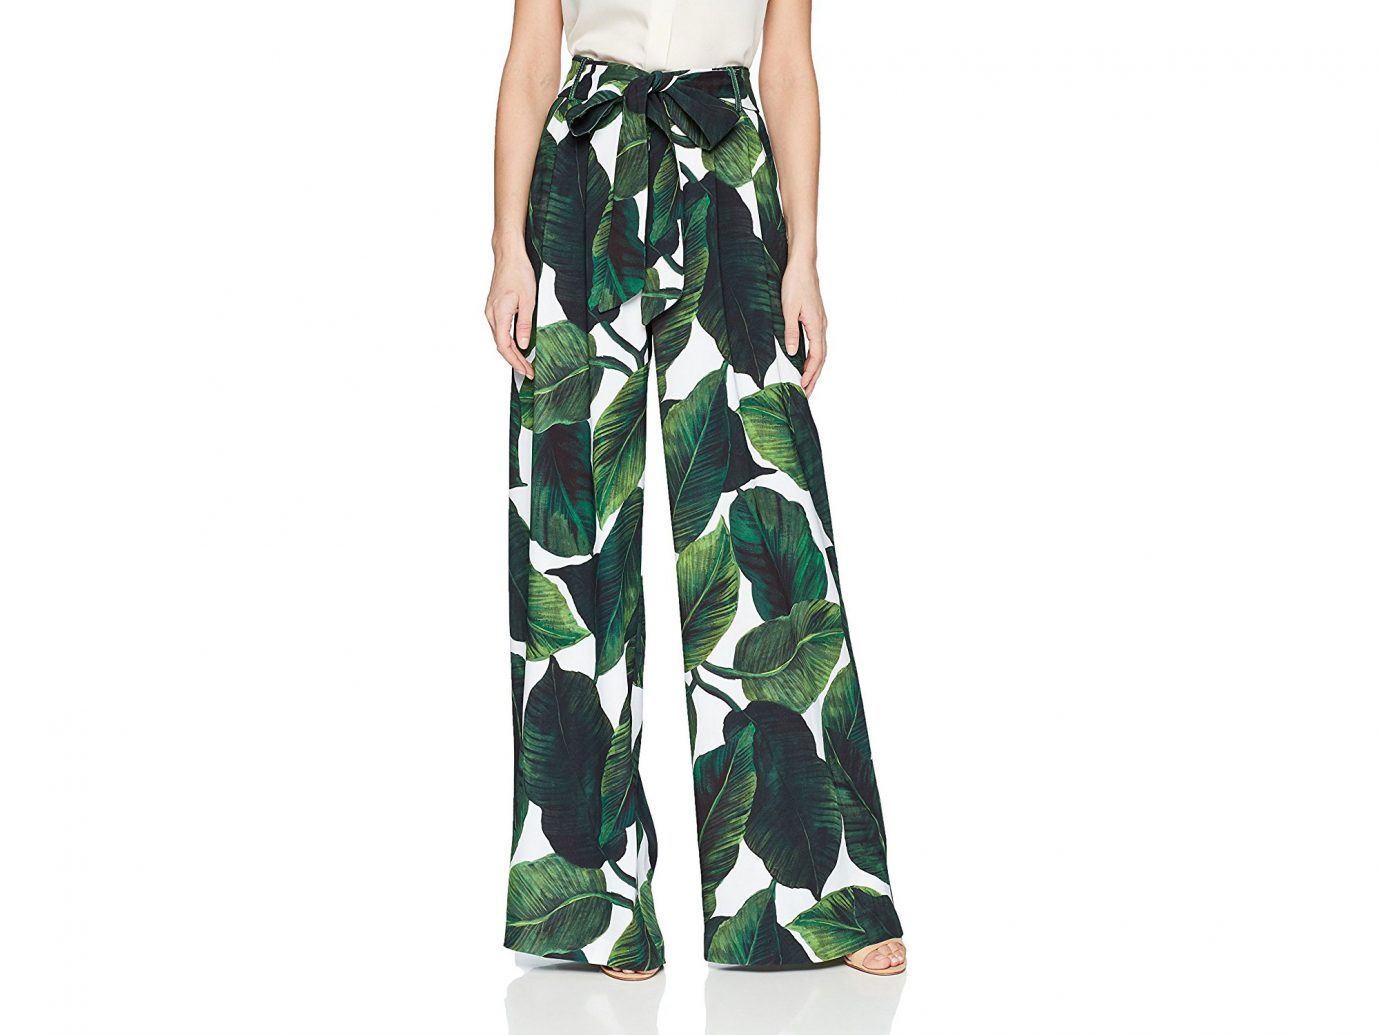 Milly Women's High-Waisted Natalie Pant